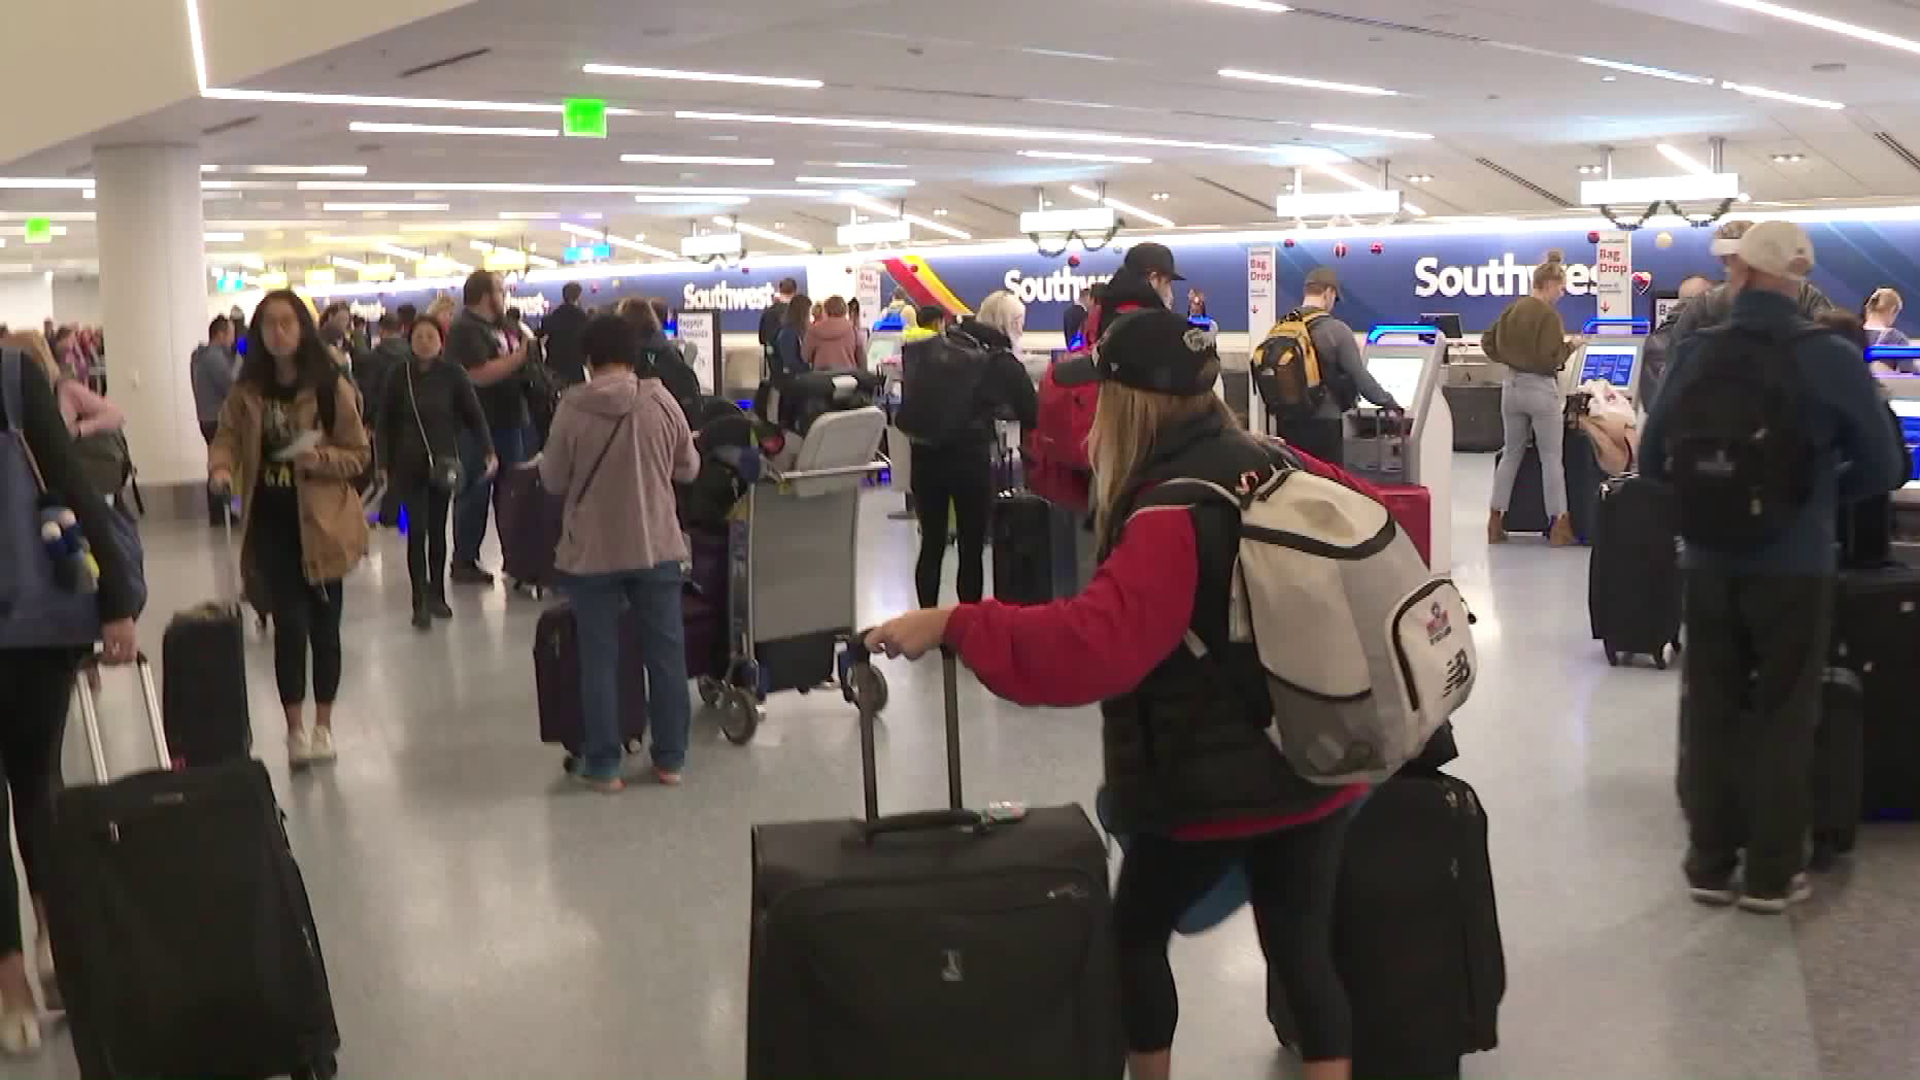 Children and surviving spouses of fallen U.S. military heroes gather at theLos Angeles International Airport before heading to Disney World on Dec. 8, 2018.(Credit: KTLA)